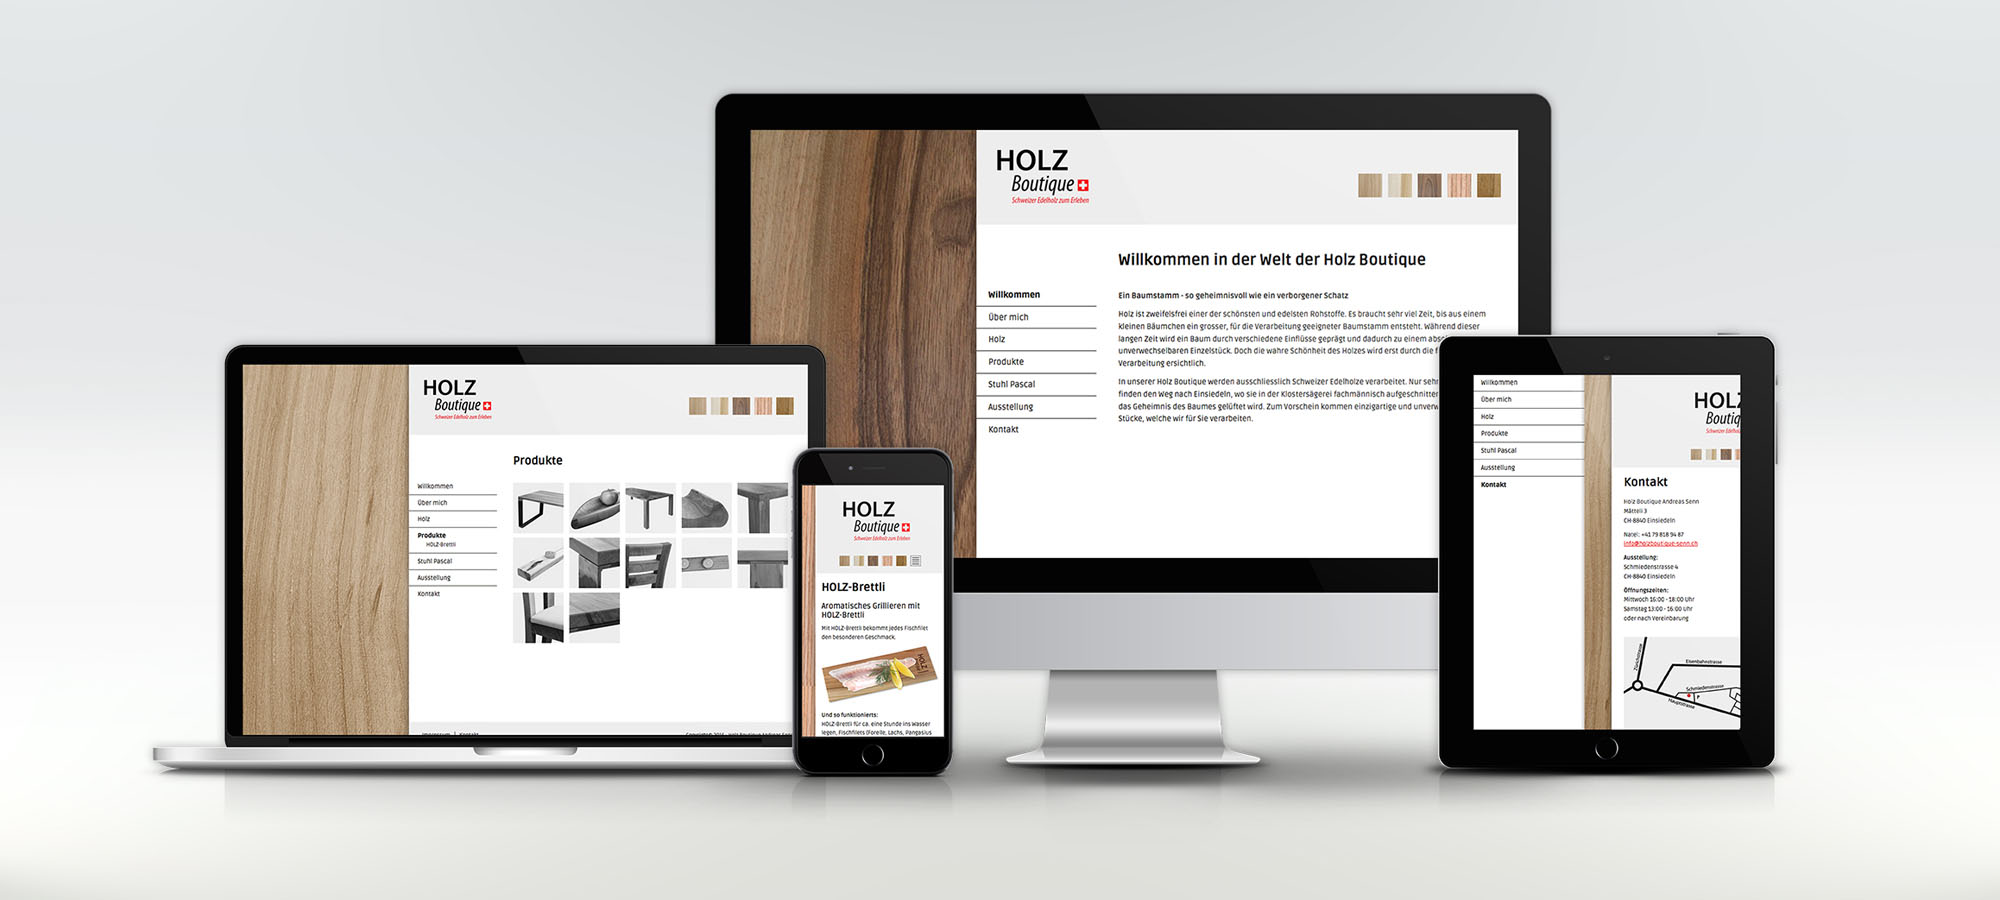 Holz Boutique